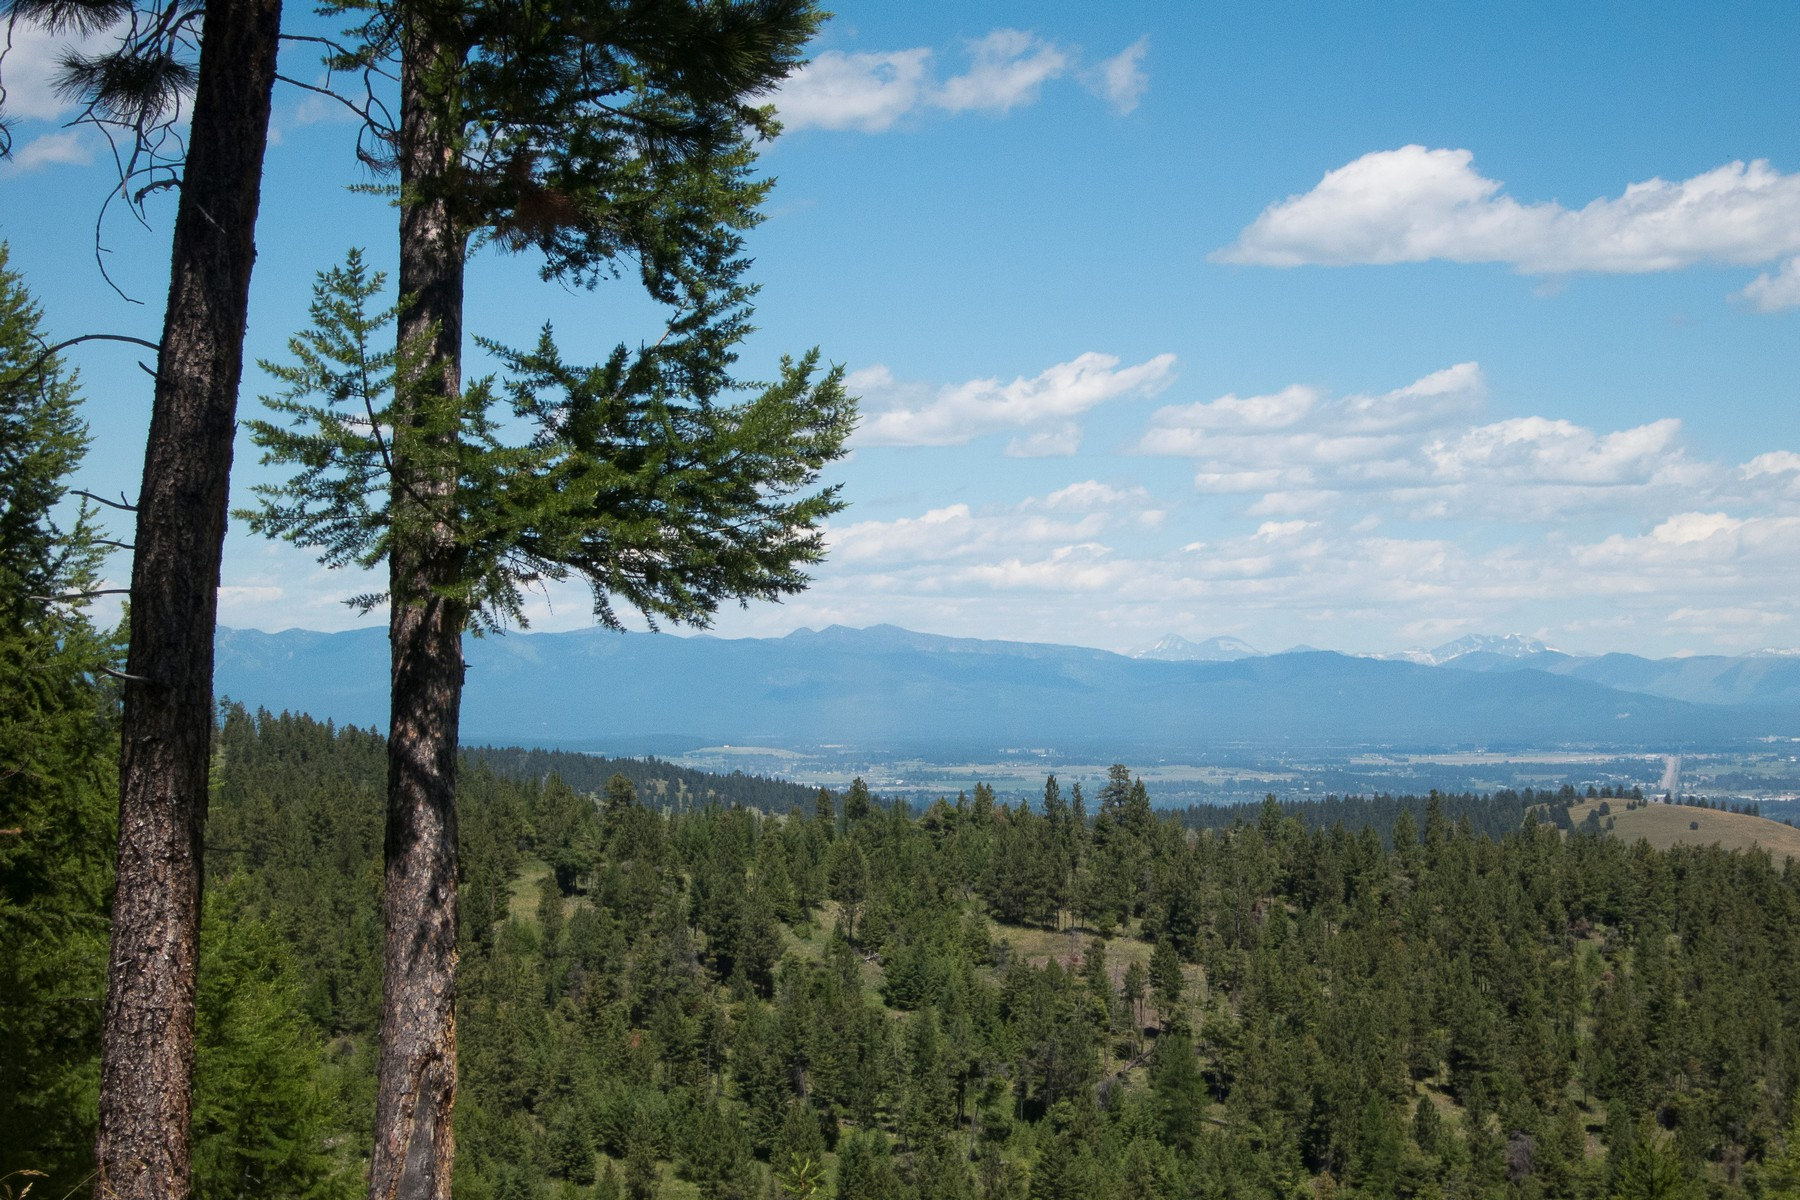 Land for Sale at Nhn Patrick Creek Road Kalispell, Montana 59901 United States